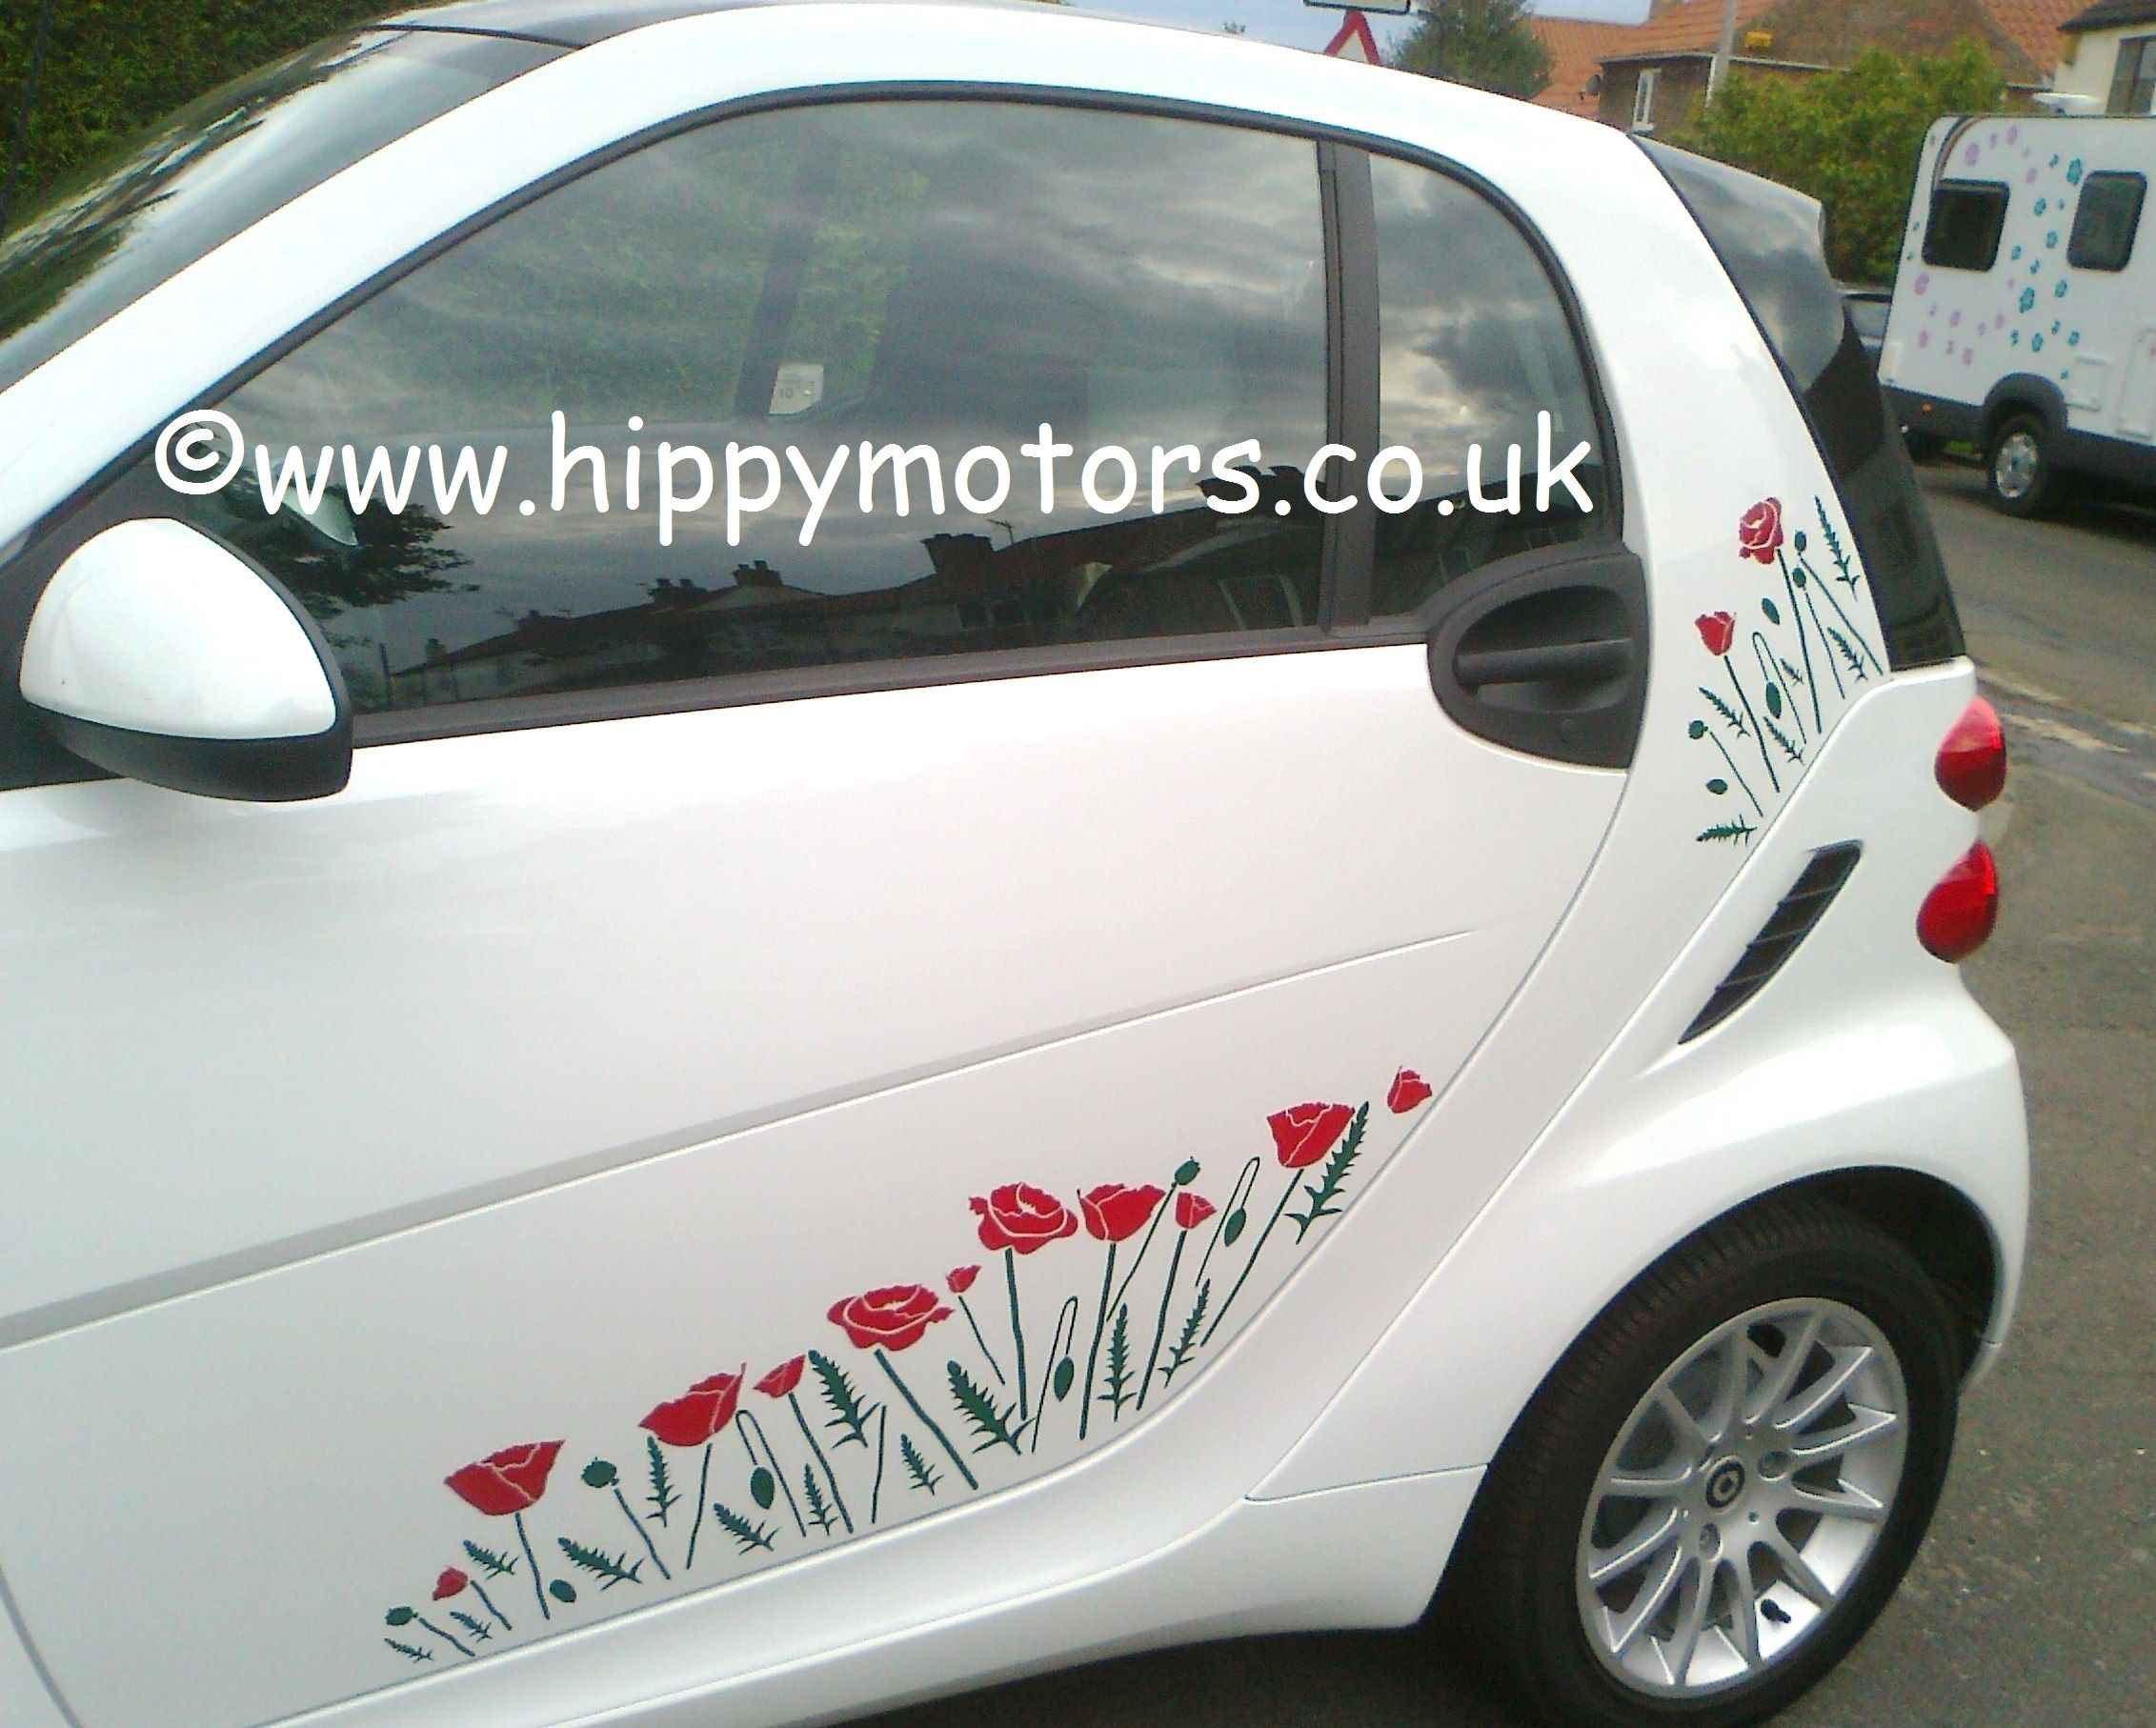 Smart car sticker designs - Smart Car Poppy Decals Suitable For Any Car Camper Van Found At Https